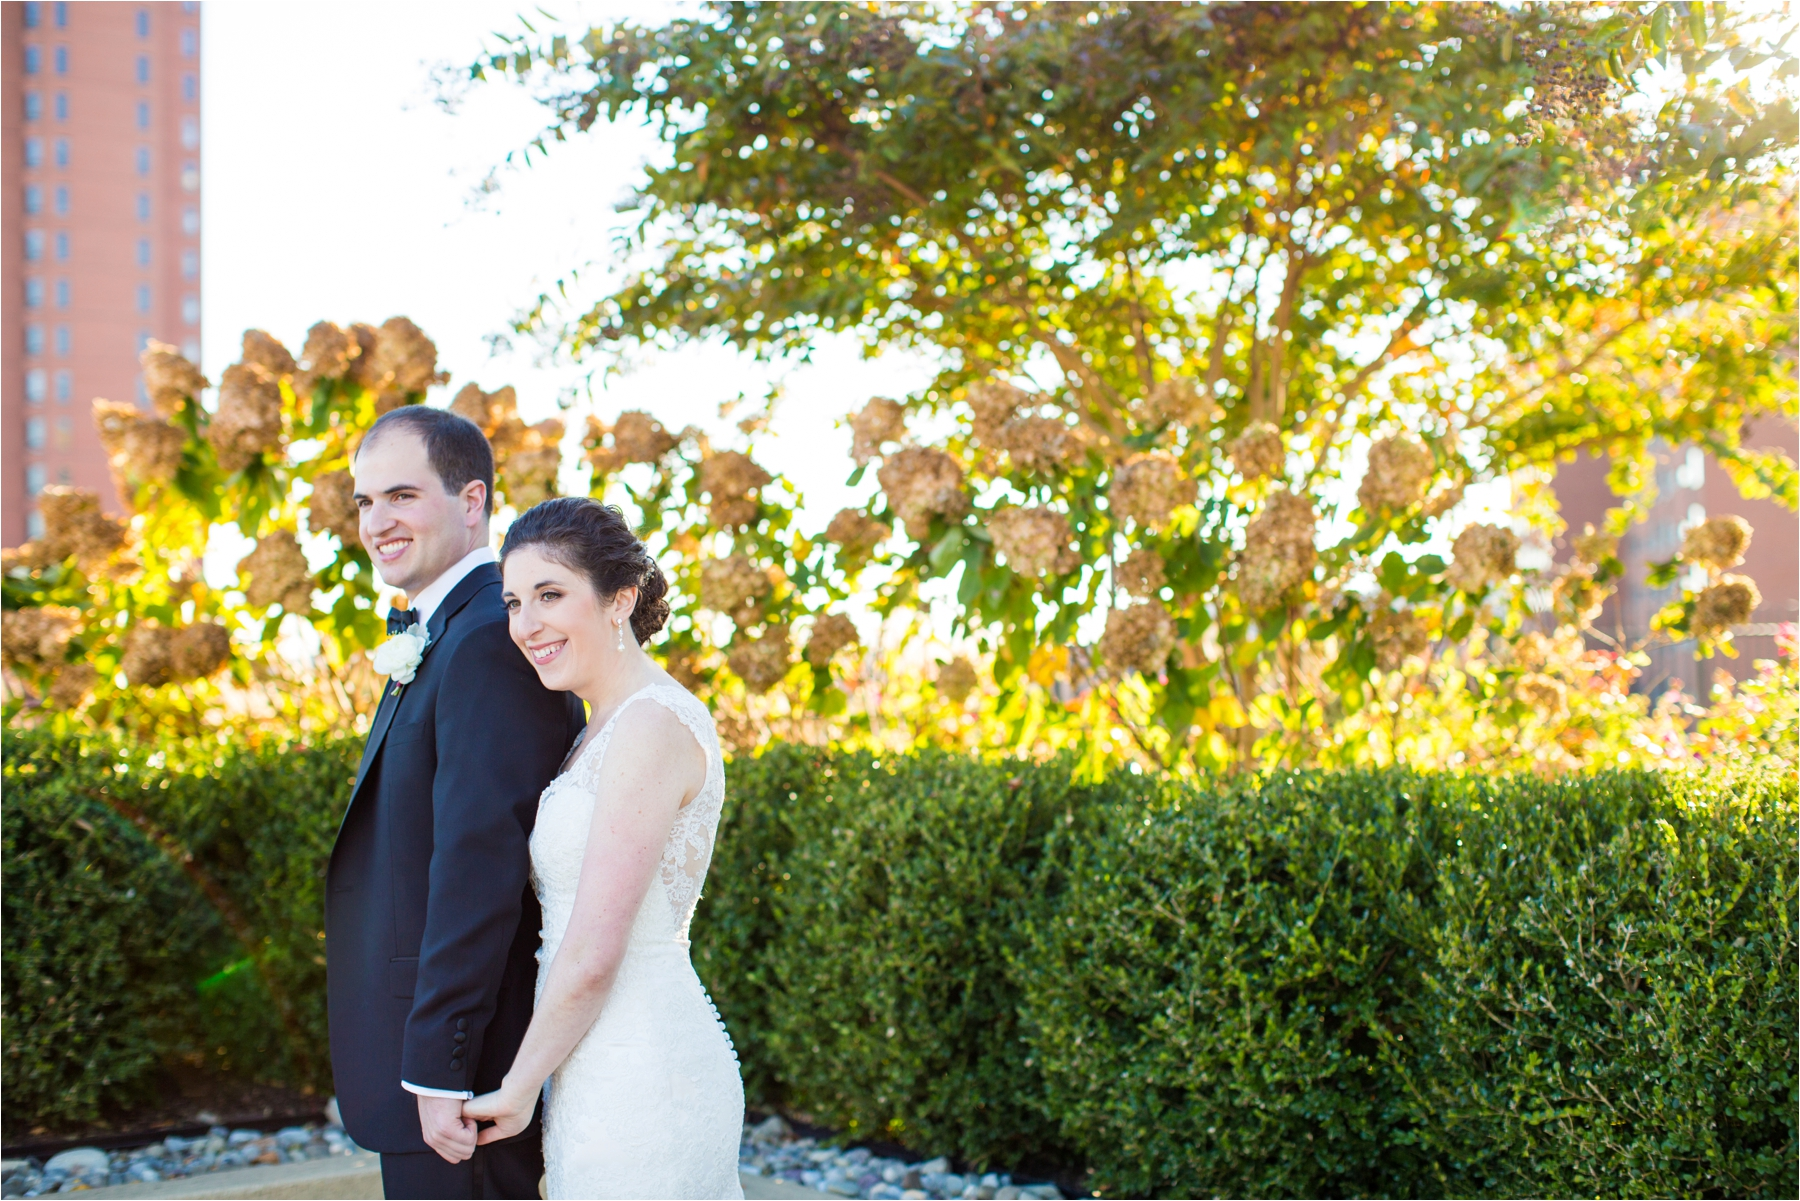 Hyatt Regency Wedding : Shari & Evan